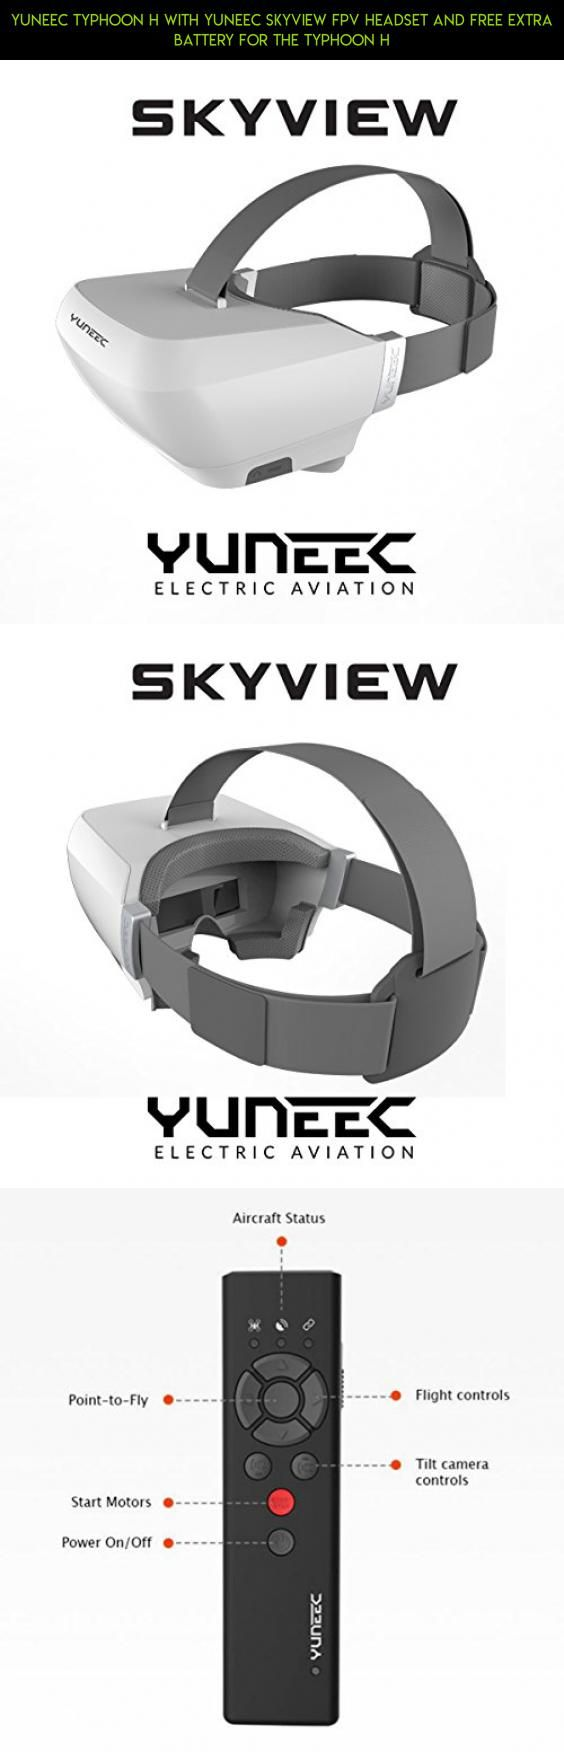 Yuneec Typhoon H with Yuneec Skyview FPV Headset and FREE extra battery for the Typhoon H #battery #tech #camera #parts #lipo #plans #shopping #drone #fpv #kit #technology #products #racing #gadgets #yuneec